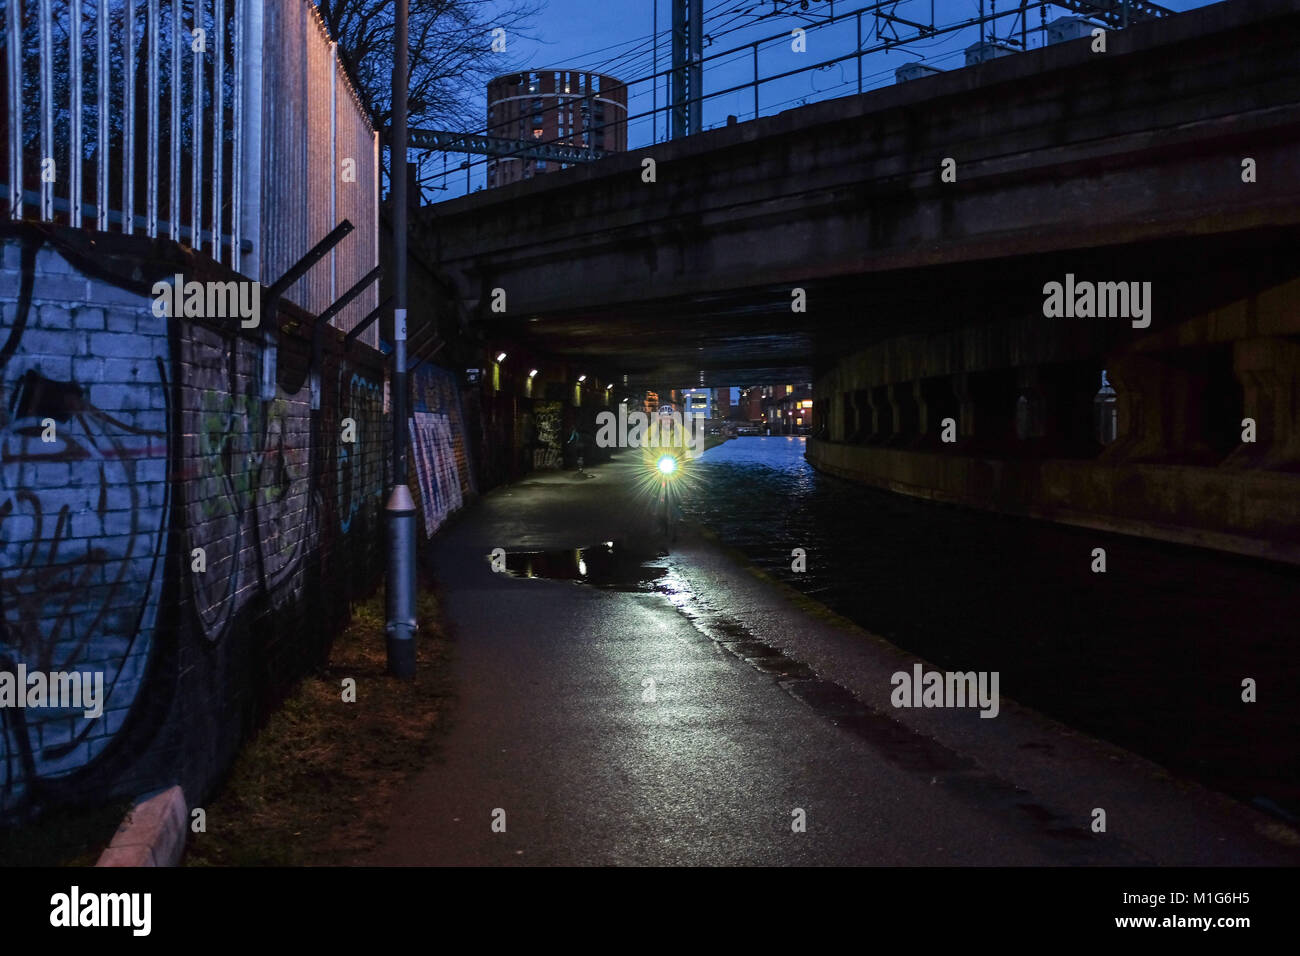 Leeds Yorkshire UK - Cyclist on the Aire Valley canal towpath Photograph taken by Simon Dack - Stock Image